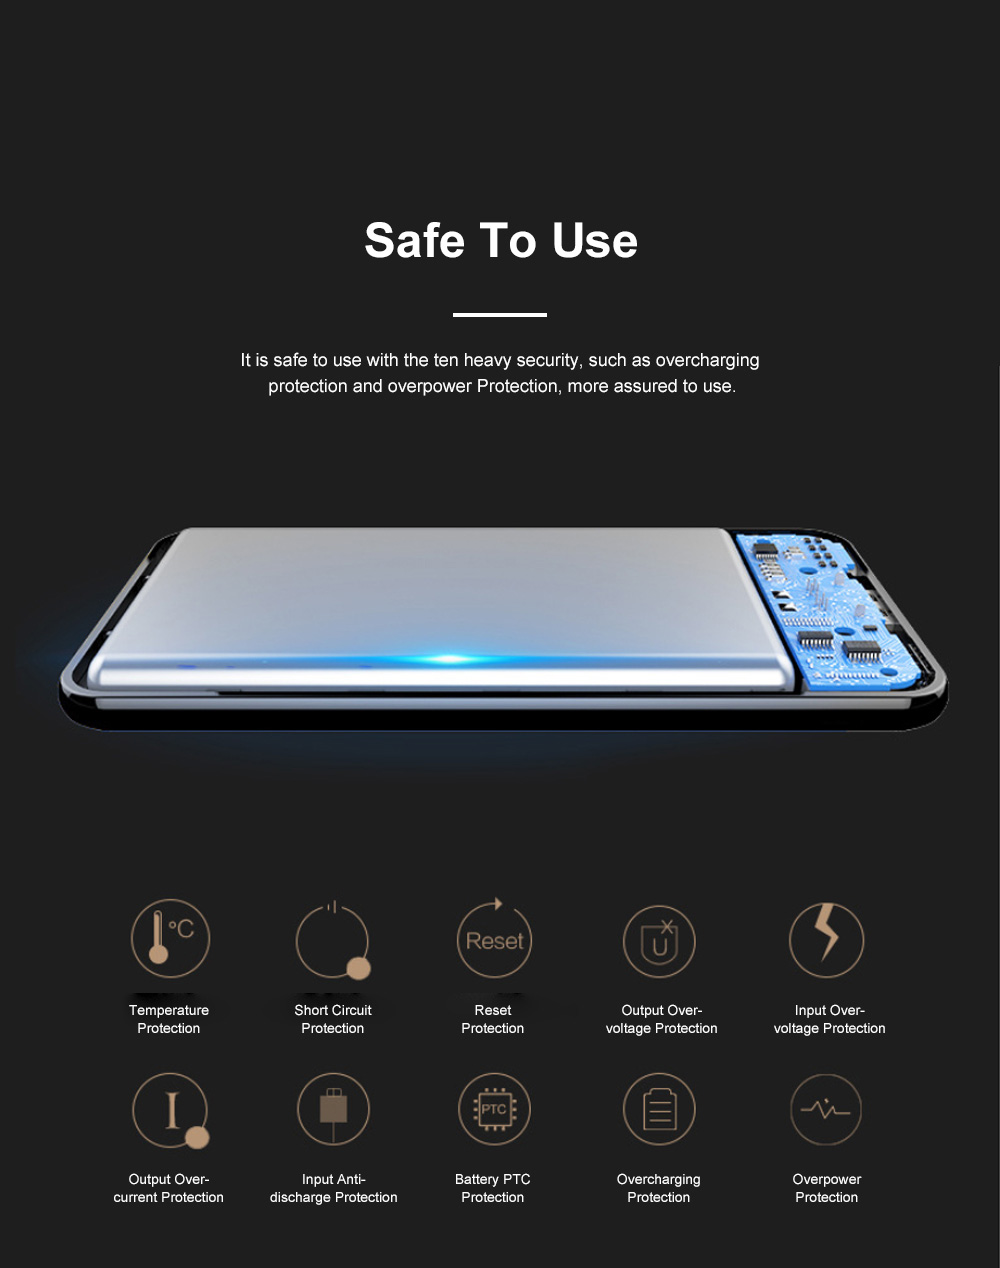 Ultra Slim 11mm Power Bank 8000mAh Quick Charging Mobile Power Supply For iPhone X iPhone 11 Pro 6